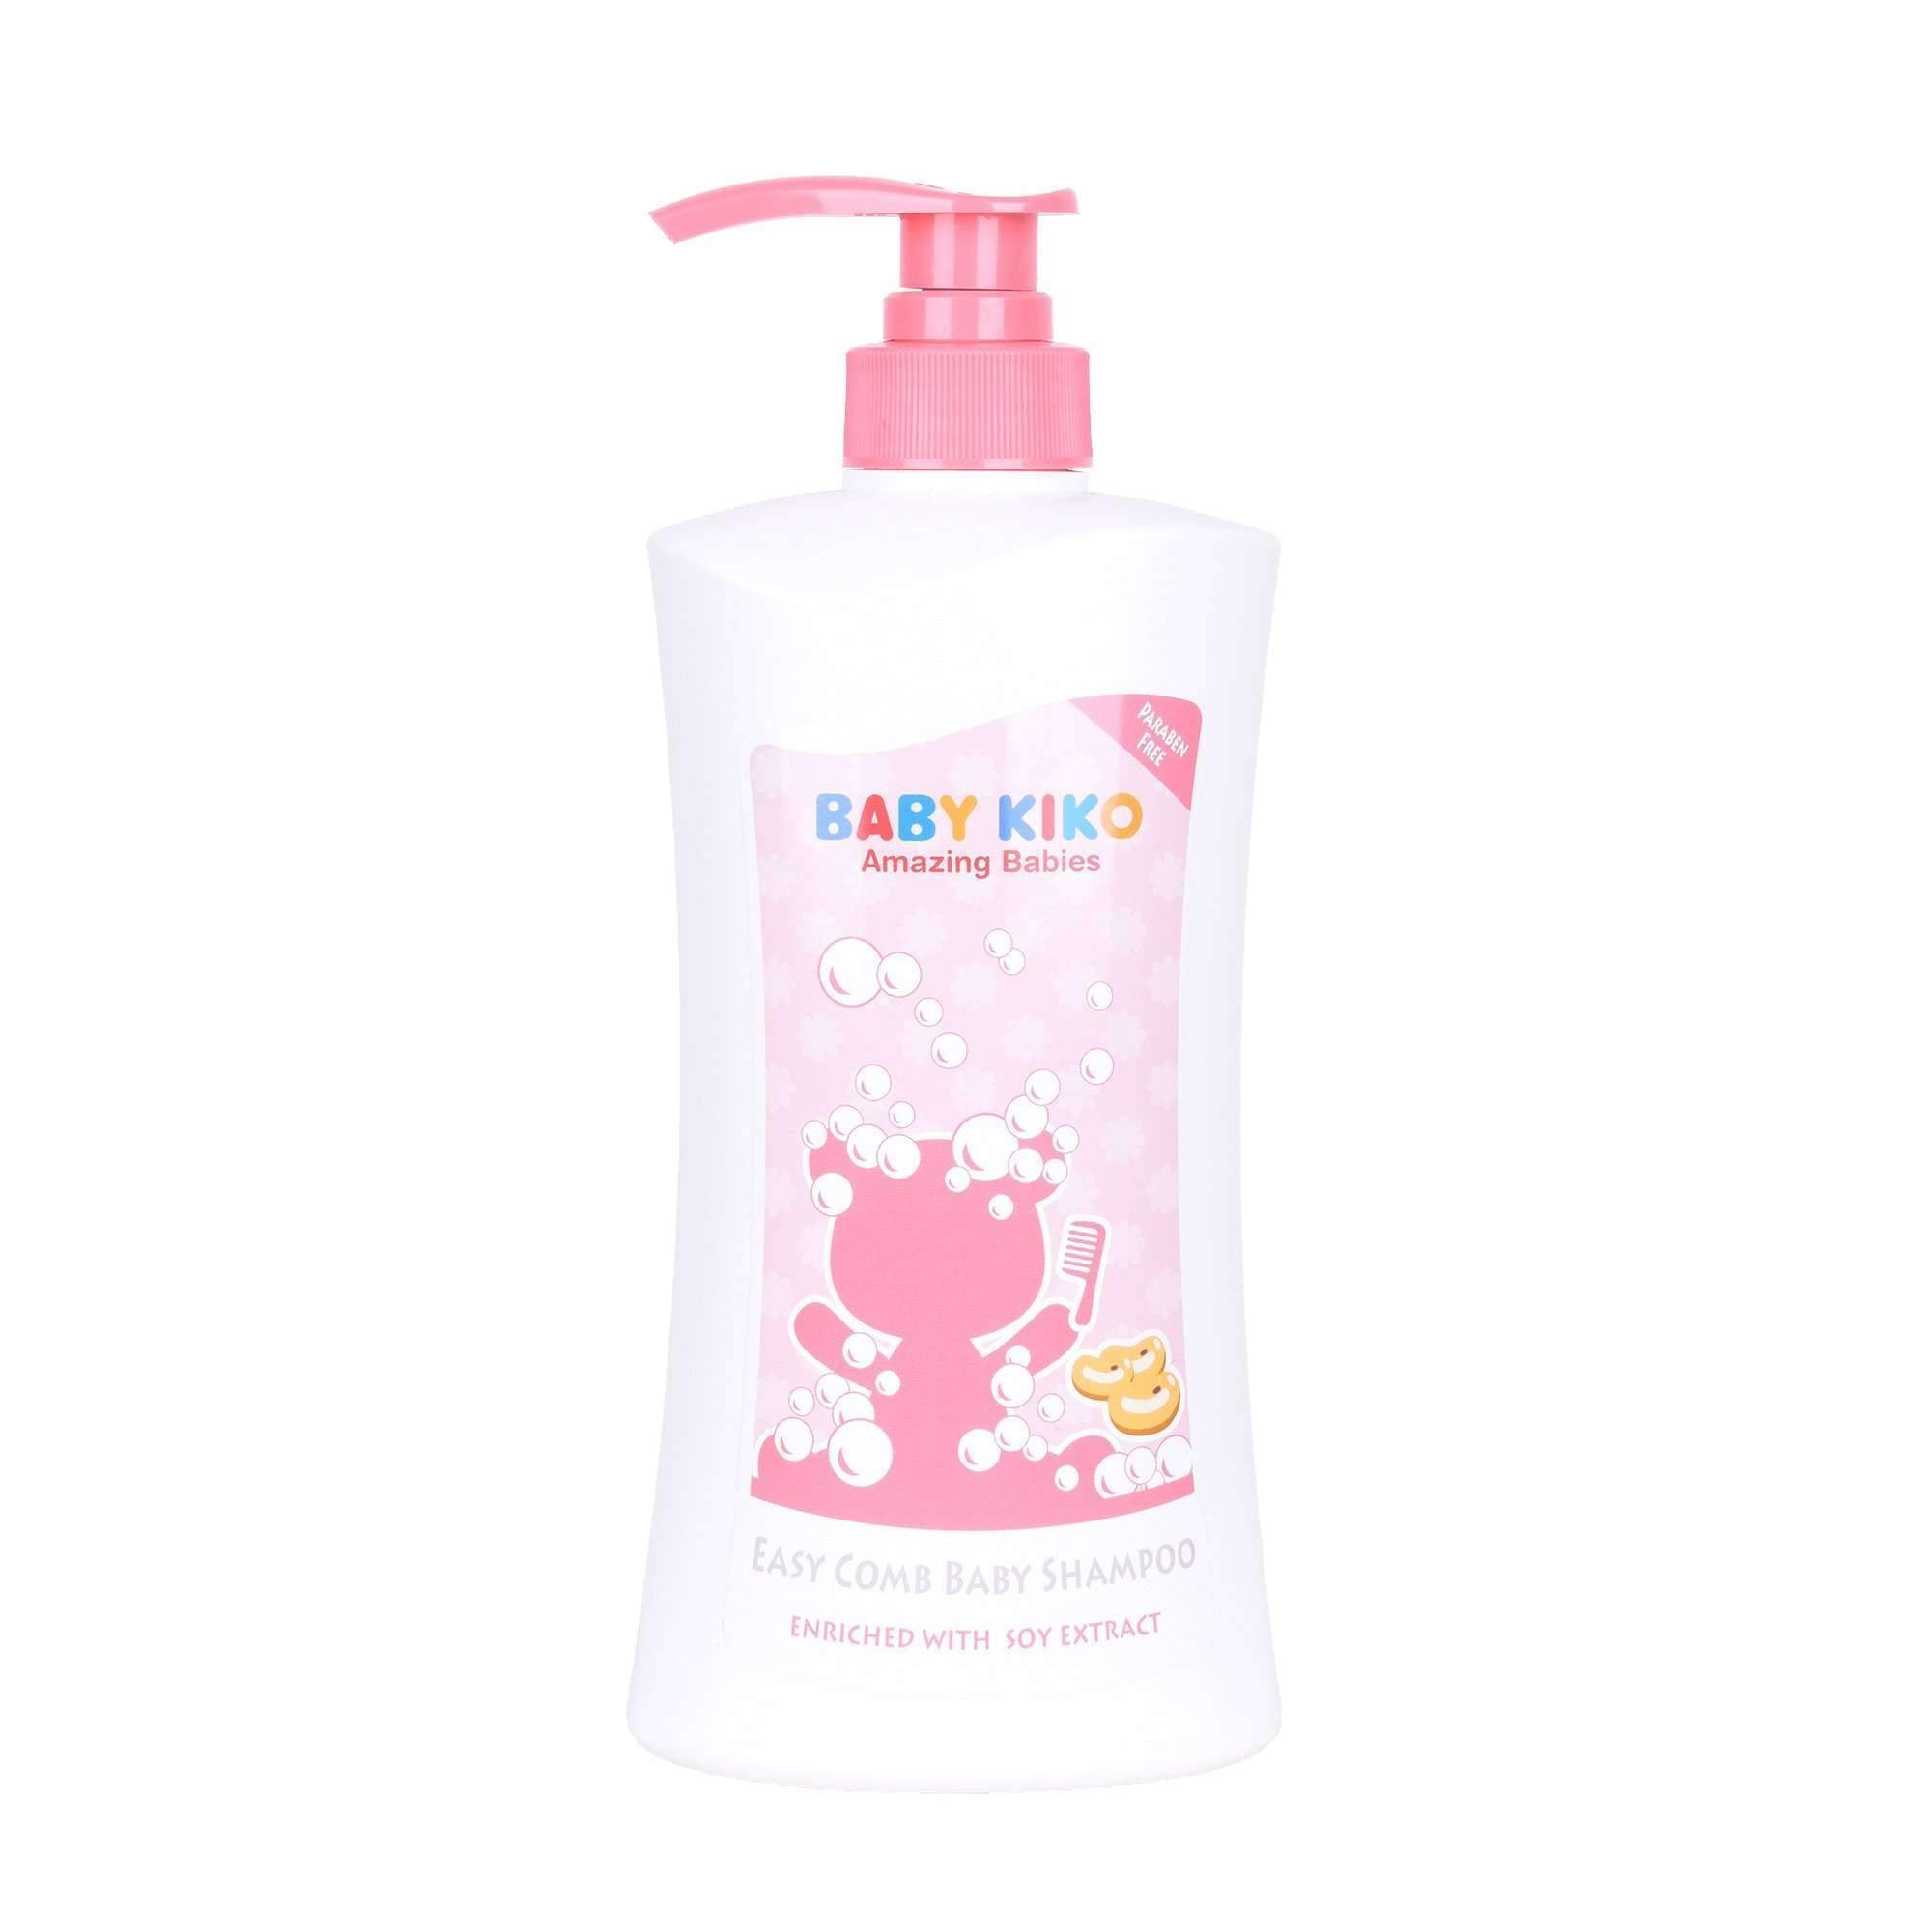 Baby KIKO Easy Comb Shampoo with Soy Extract - 750ml 3650-001 : Buy Baby KIKO online at CMG.MY